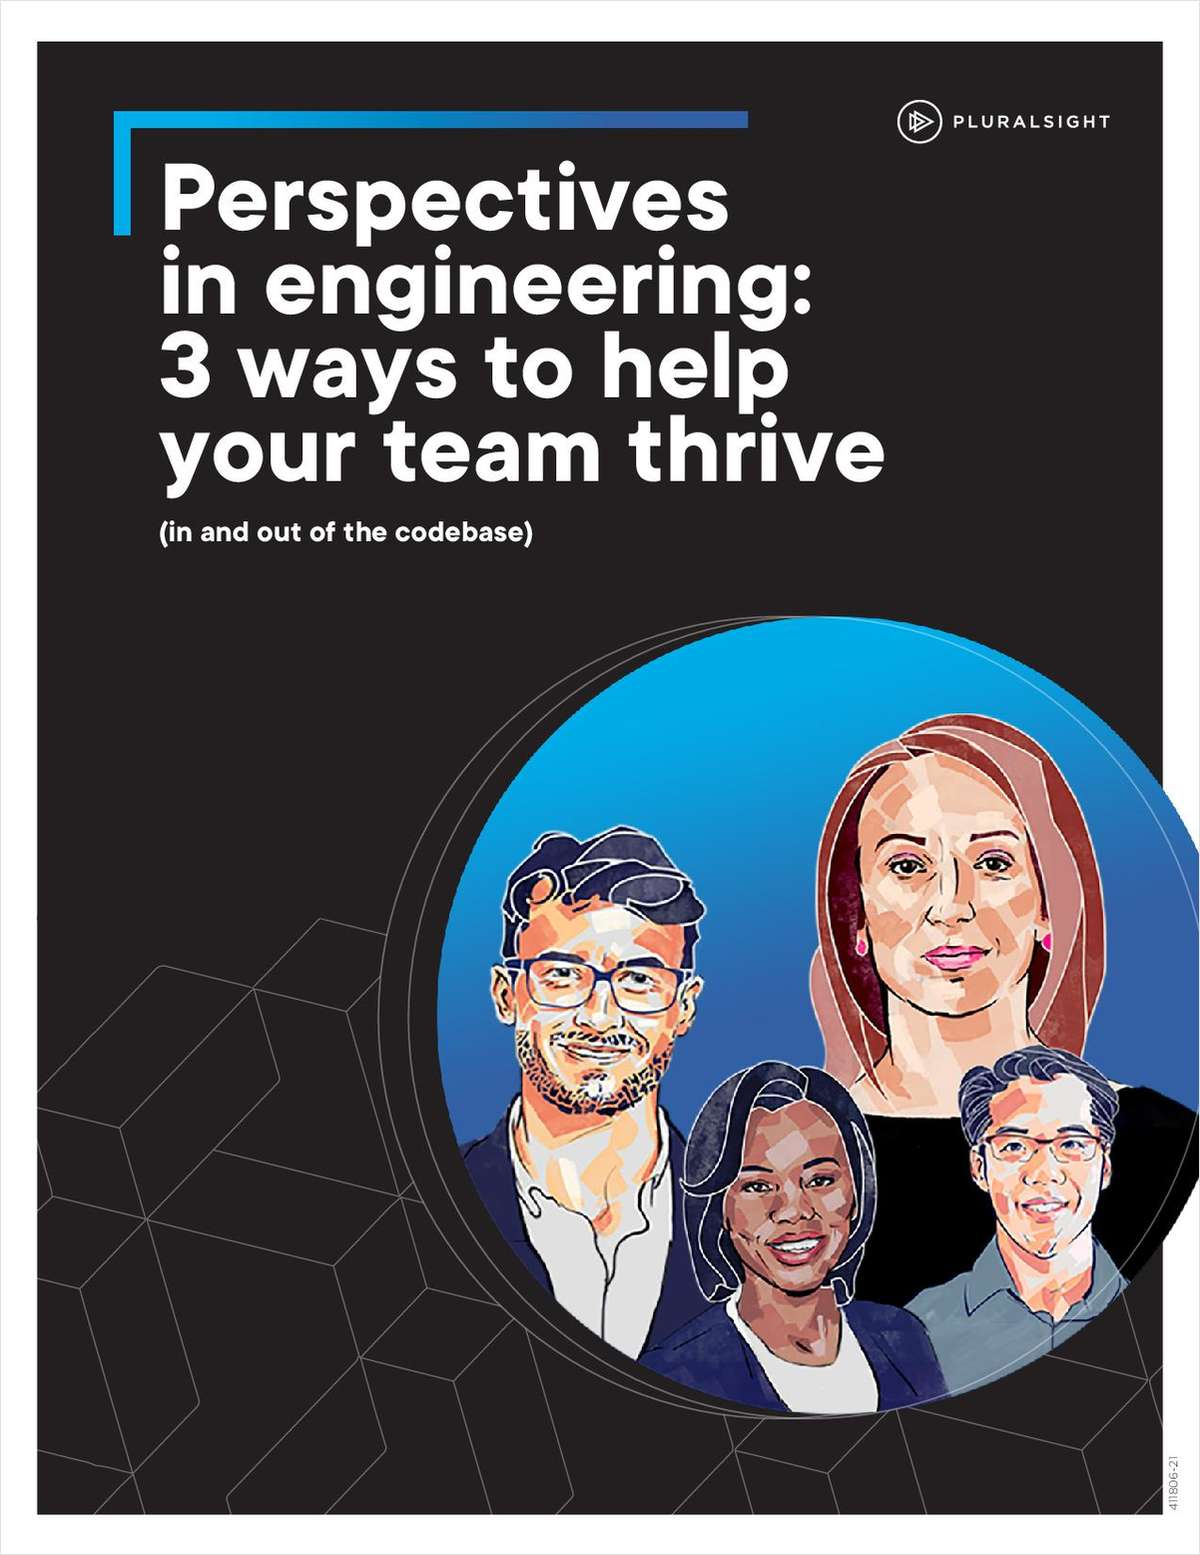 The Perspectives in Engineering: 3 Ways to Help Your Team Thrive